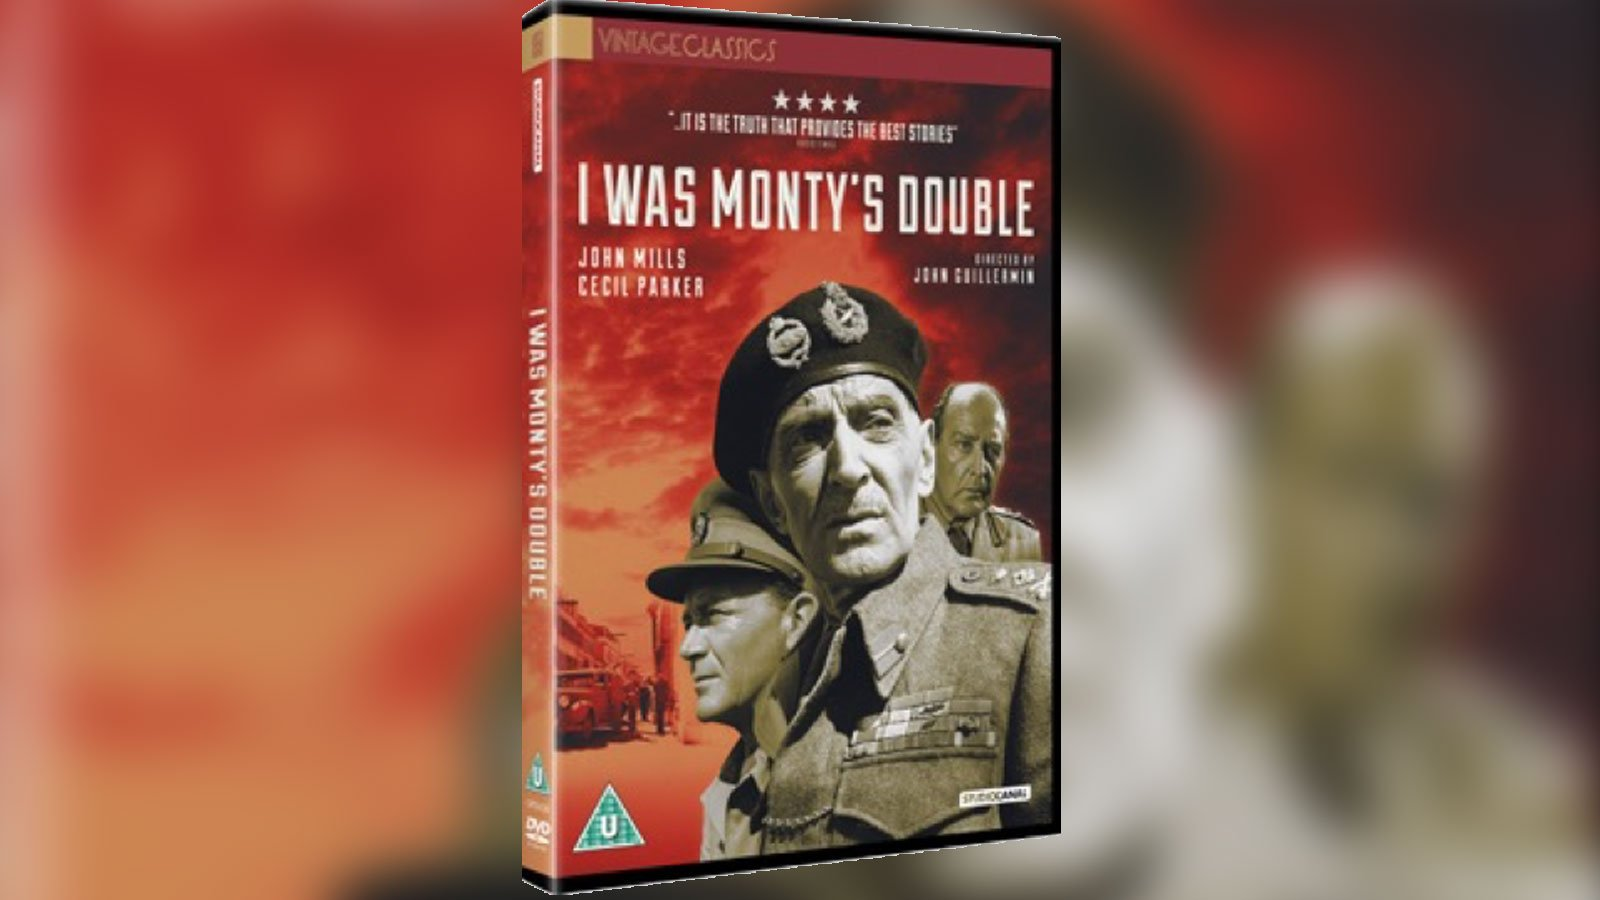 I Was Monty's Double Review - OC Movie Reviews - Movie Reviews, Movie News, Documentary Reviews, Short Films, Short Film Reviews, Trailers, Movie Trailers, Interviews, film reviews, film news, hollywood, indie films, documentaries, TV shows